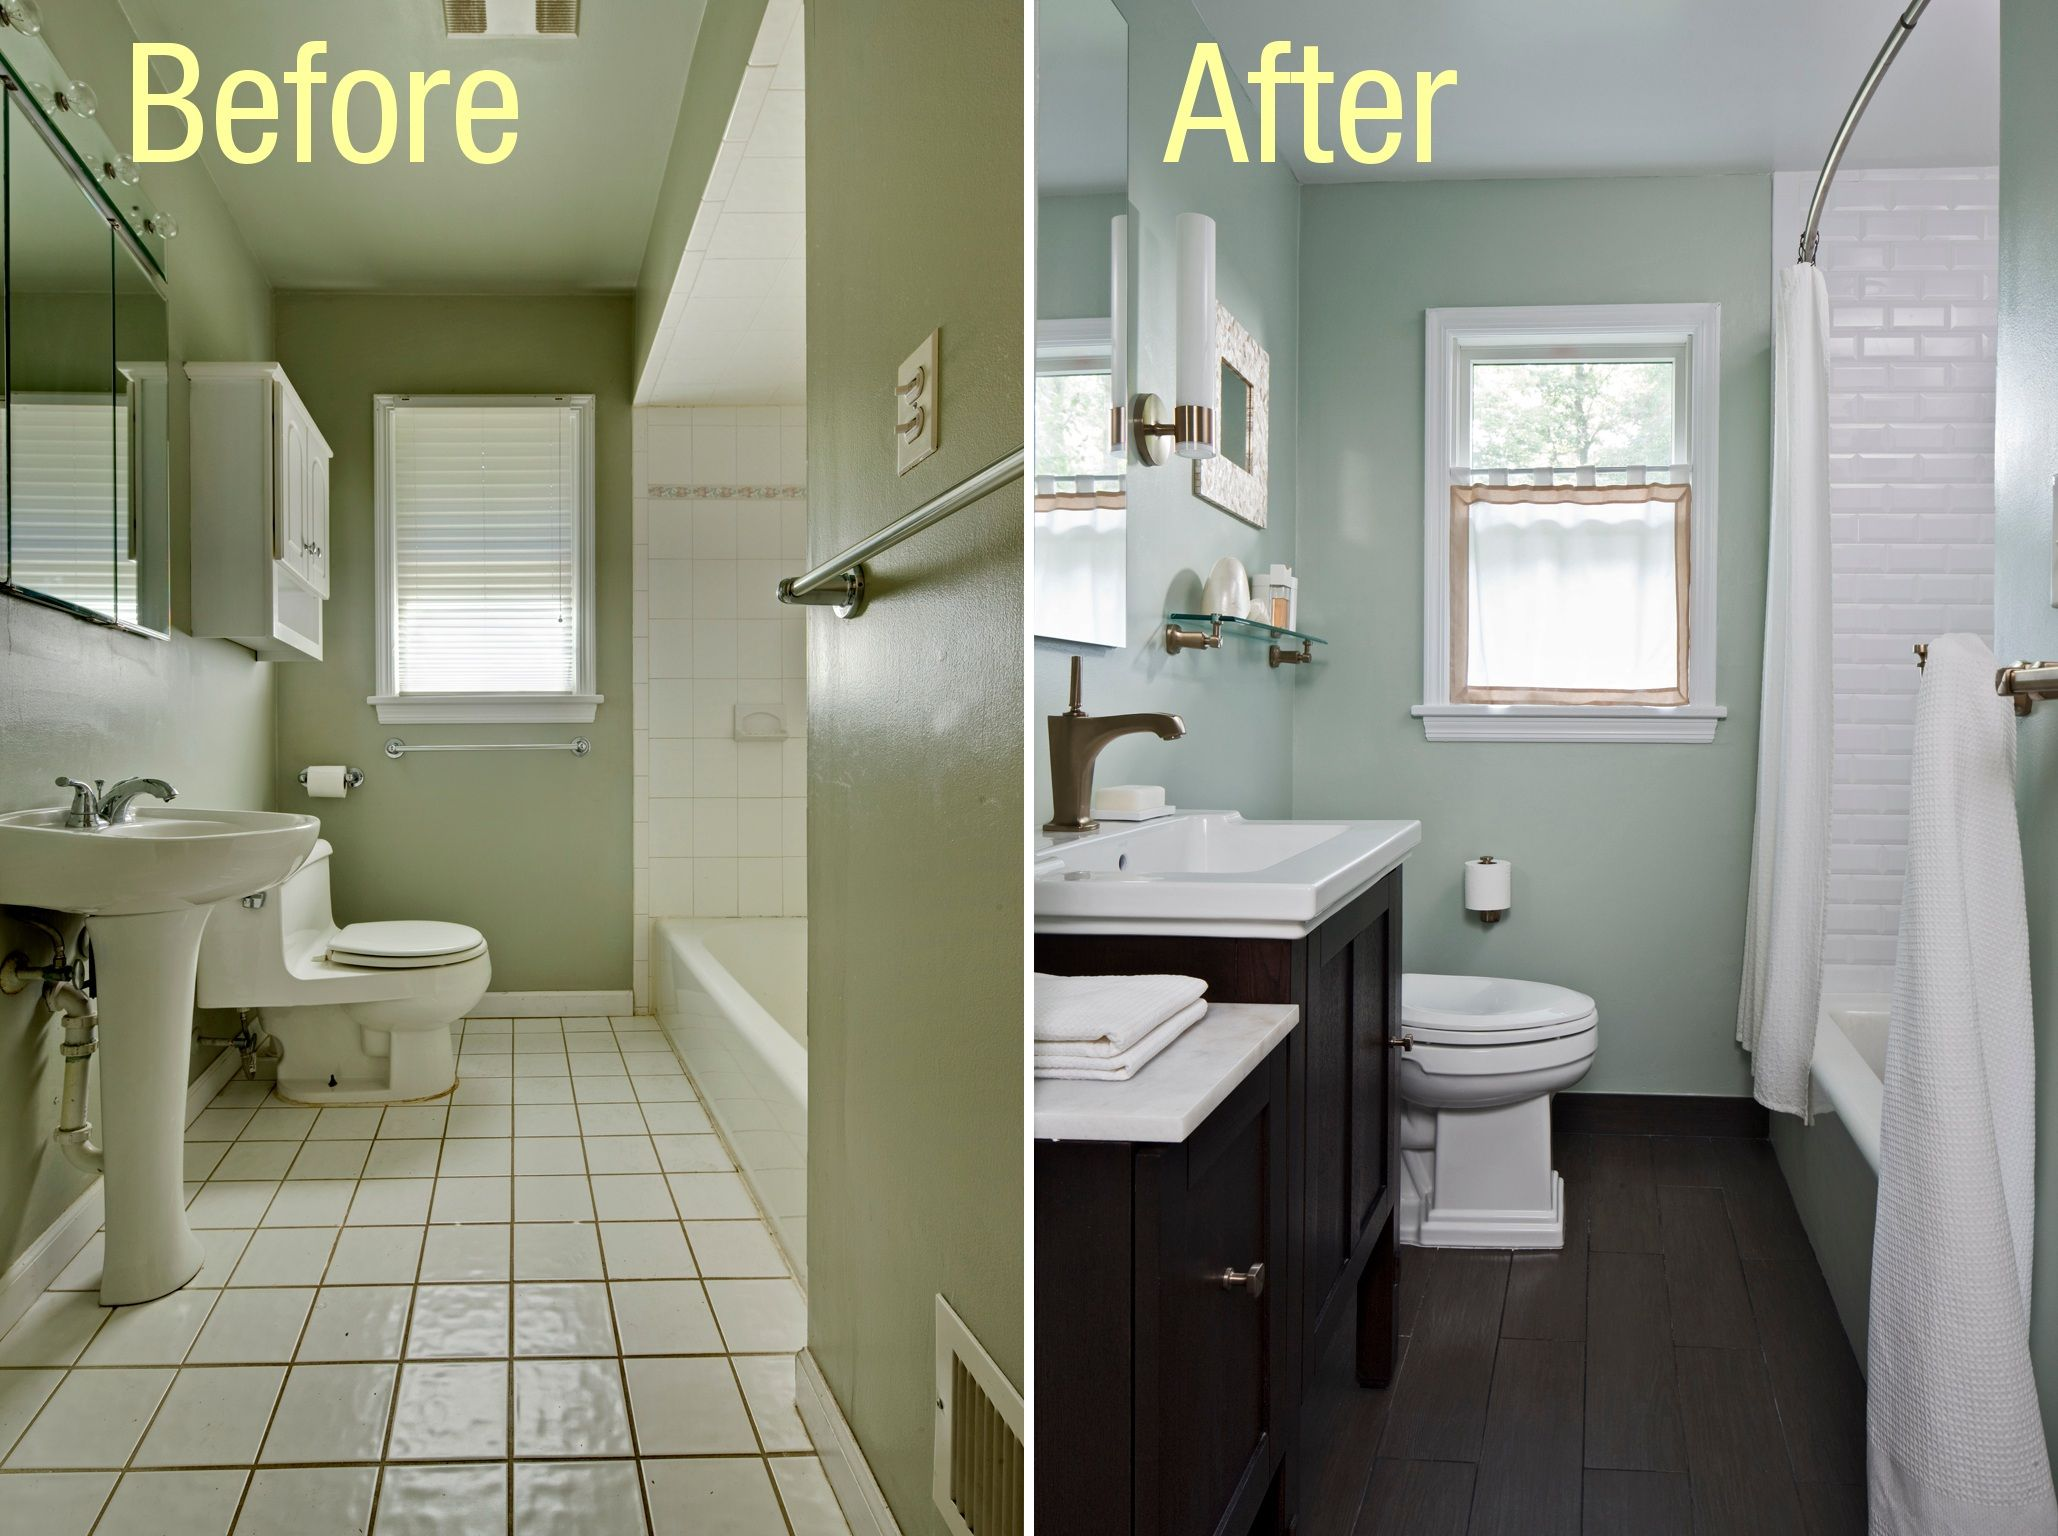 10 Bathroom Remodel Ideas Before And After 3 Removing Old Tiles Small Bathroom Renovations Small Bathroom Remodel Bathroom Makeovers On A Budget